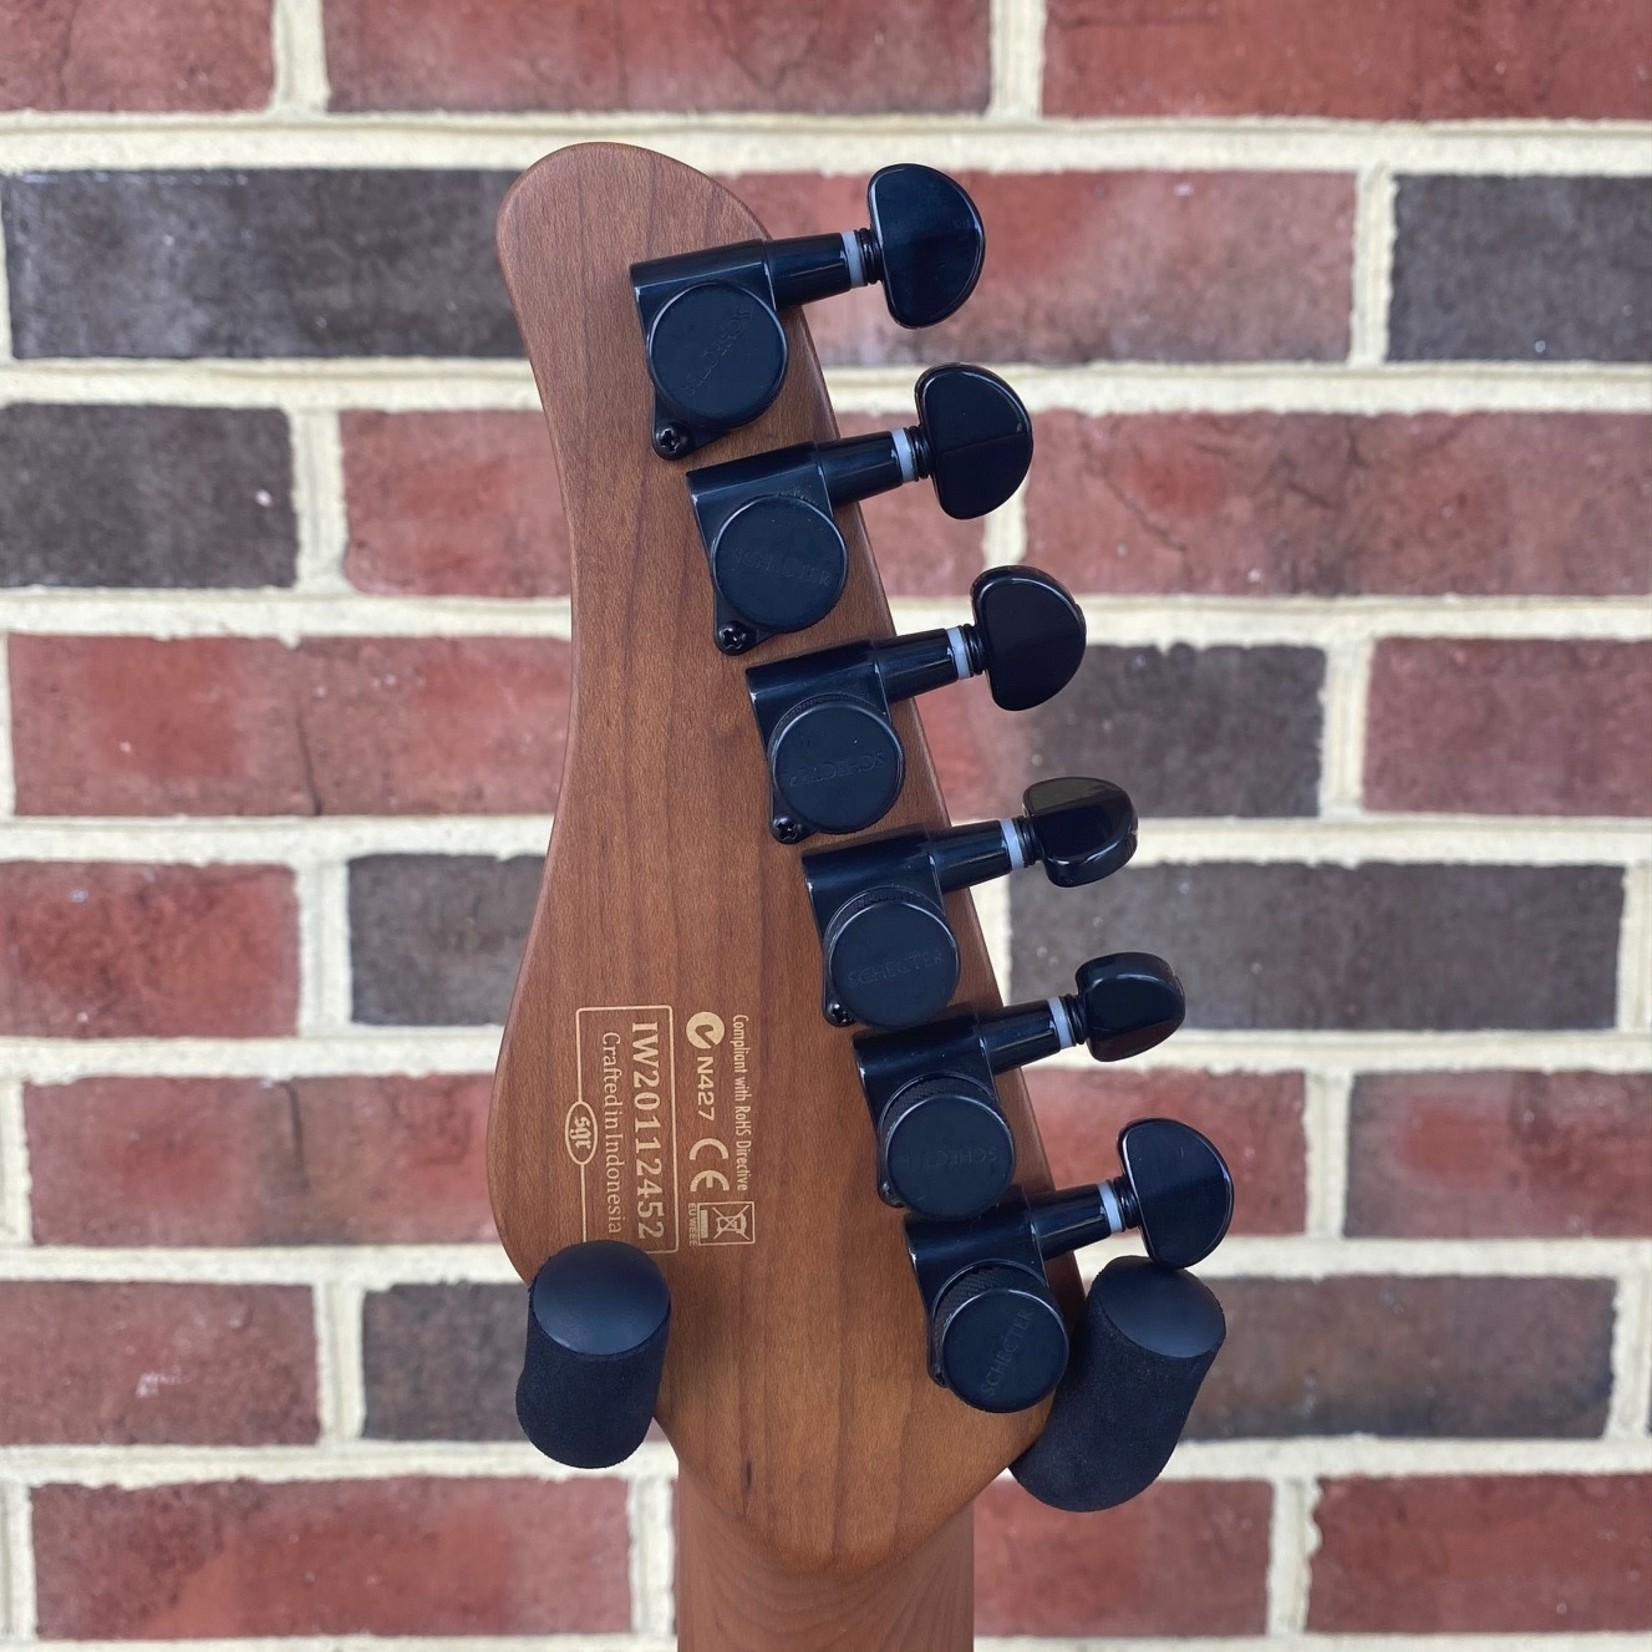 Schecter Guitar Research Schecter PT Pro, Trans Blue Burst, Roasted Maple Neck, Locking Tuners